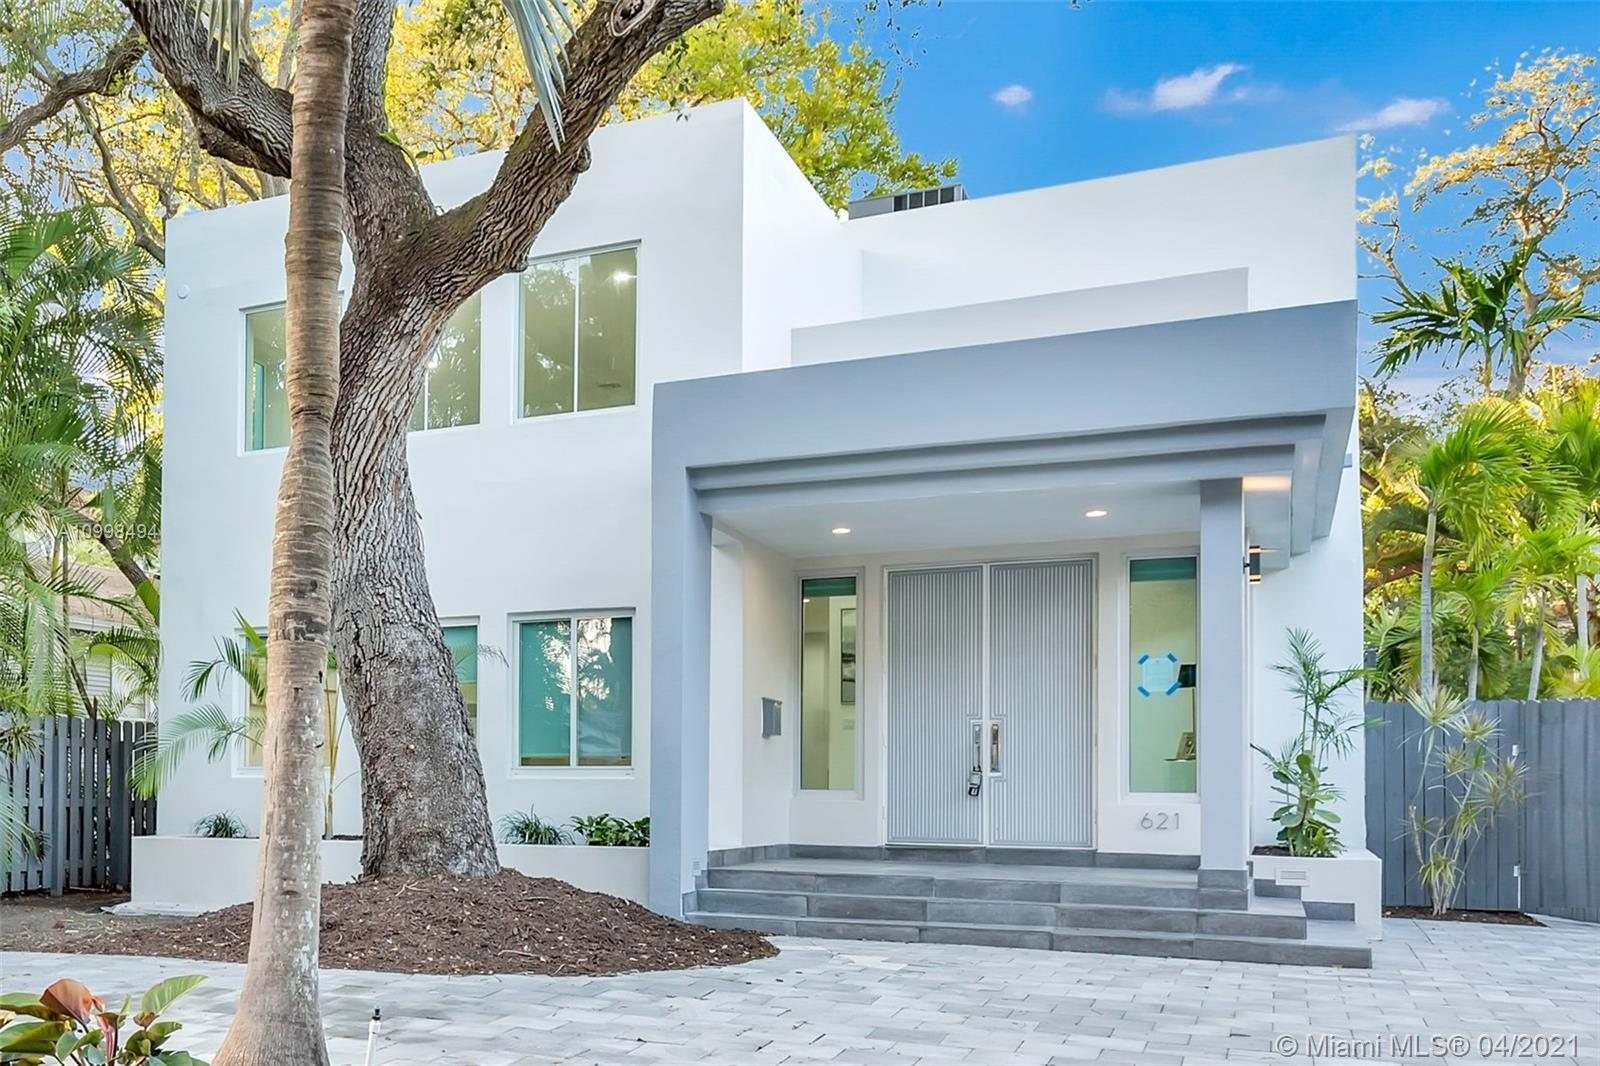 Beautifully remodeled 2 story home in the tree lined Rio Vista neighborhood.  Located just south of